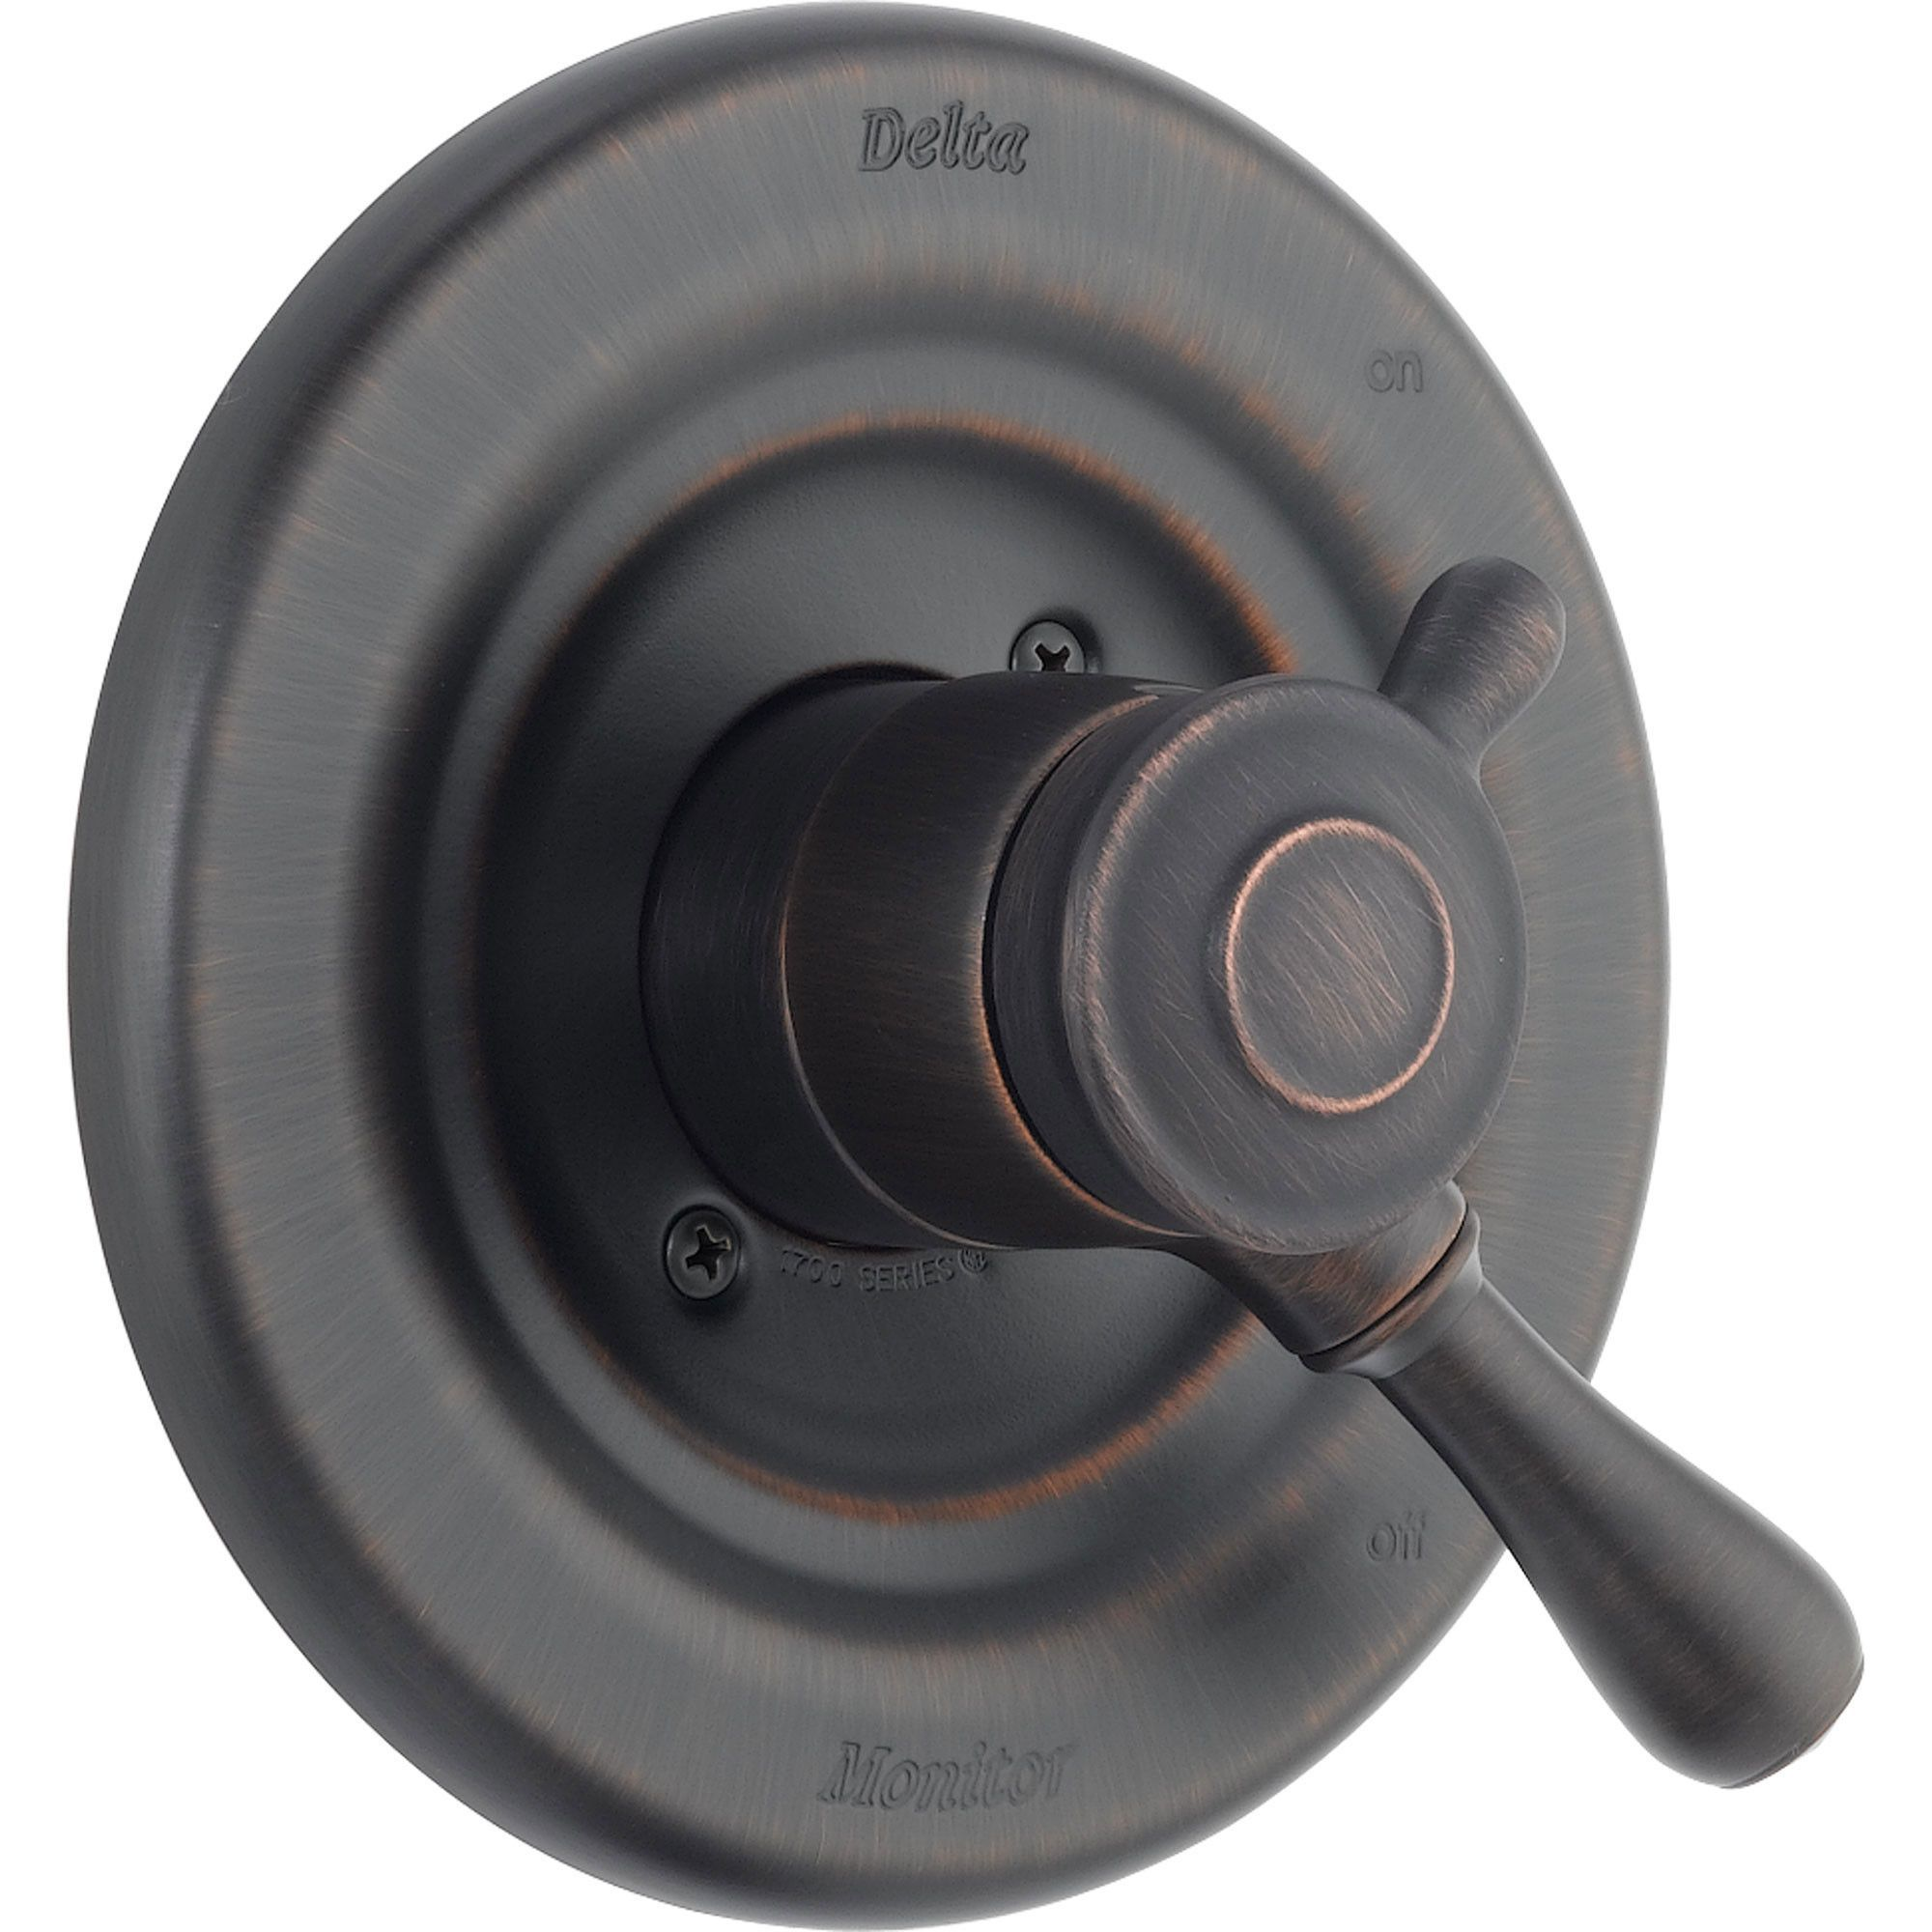 Delta Leland Venetian Bronze Temp/Volume Shower Control Valve Trim ...